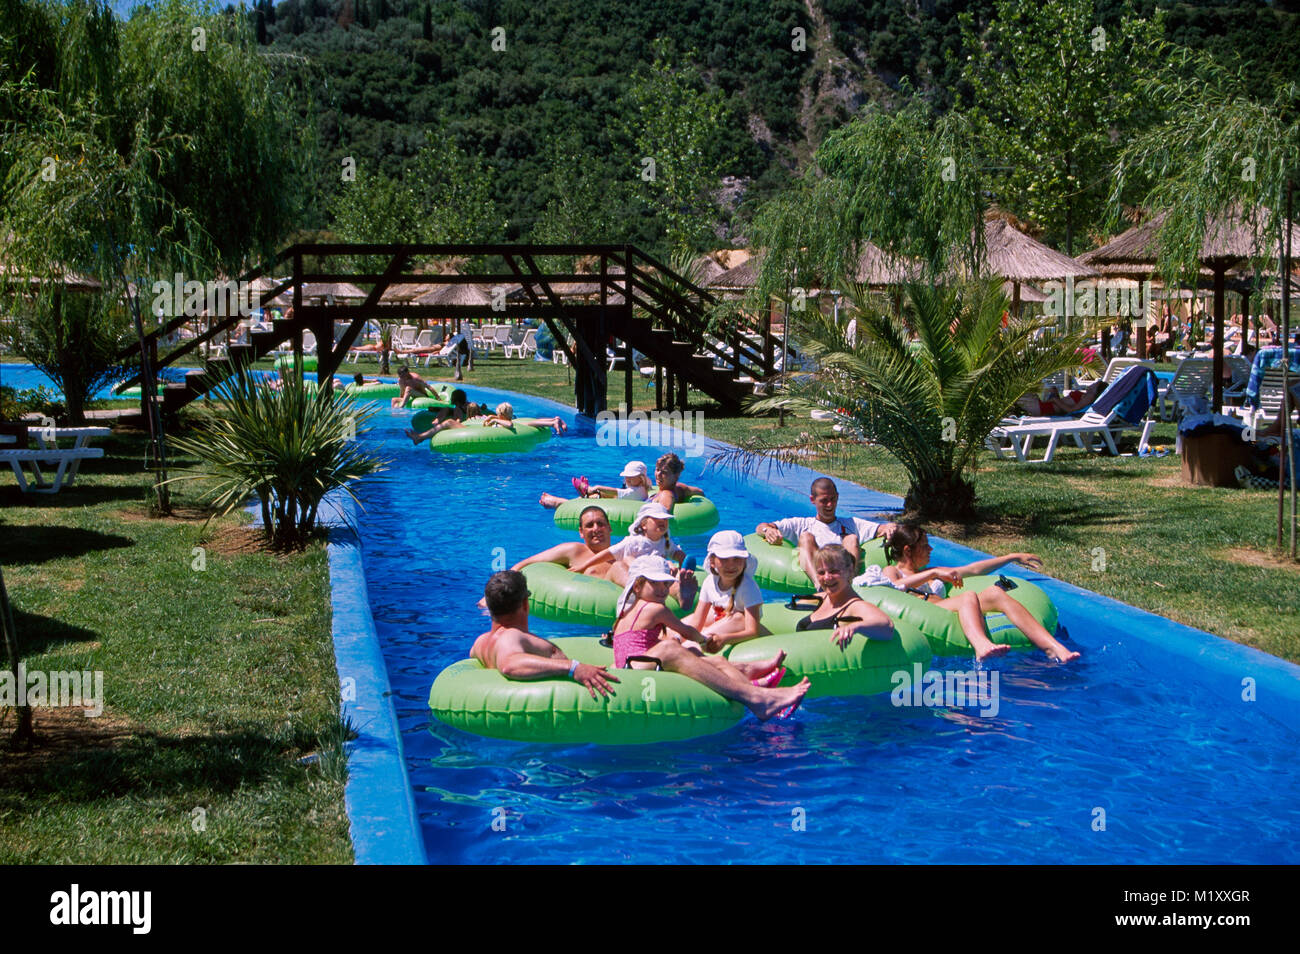 Aqualand Water Park,  Corfu, Greece, Europe - Stock Image